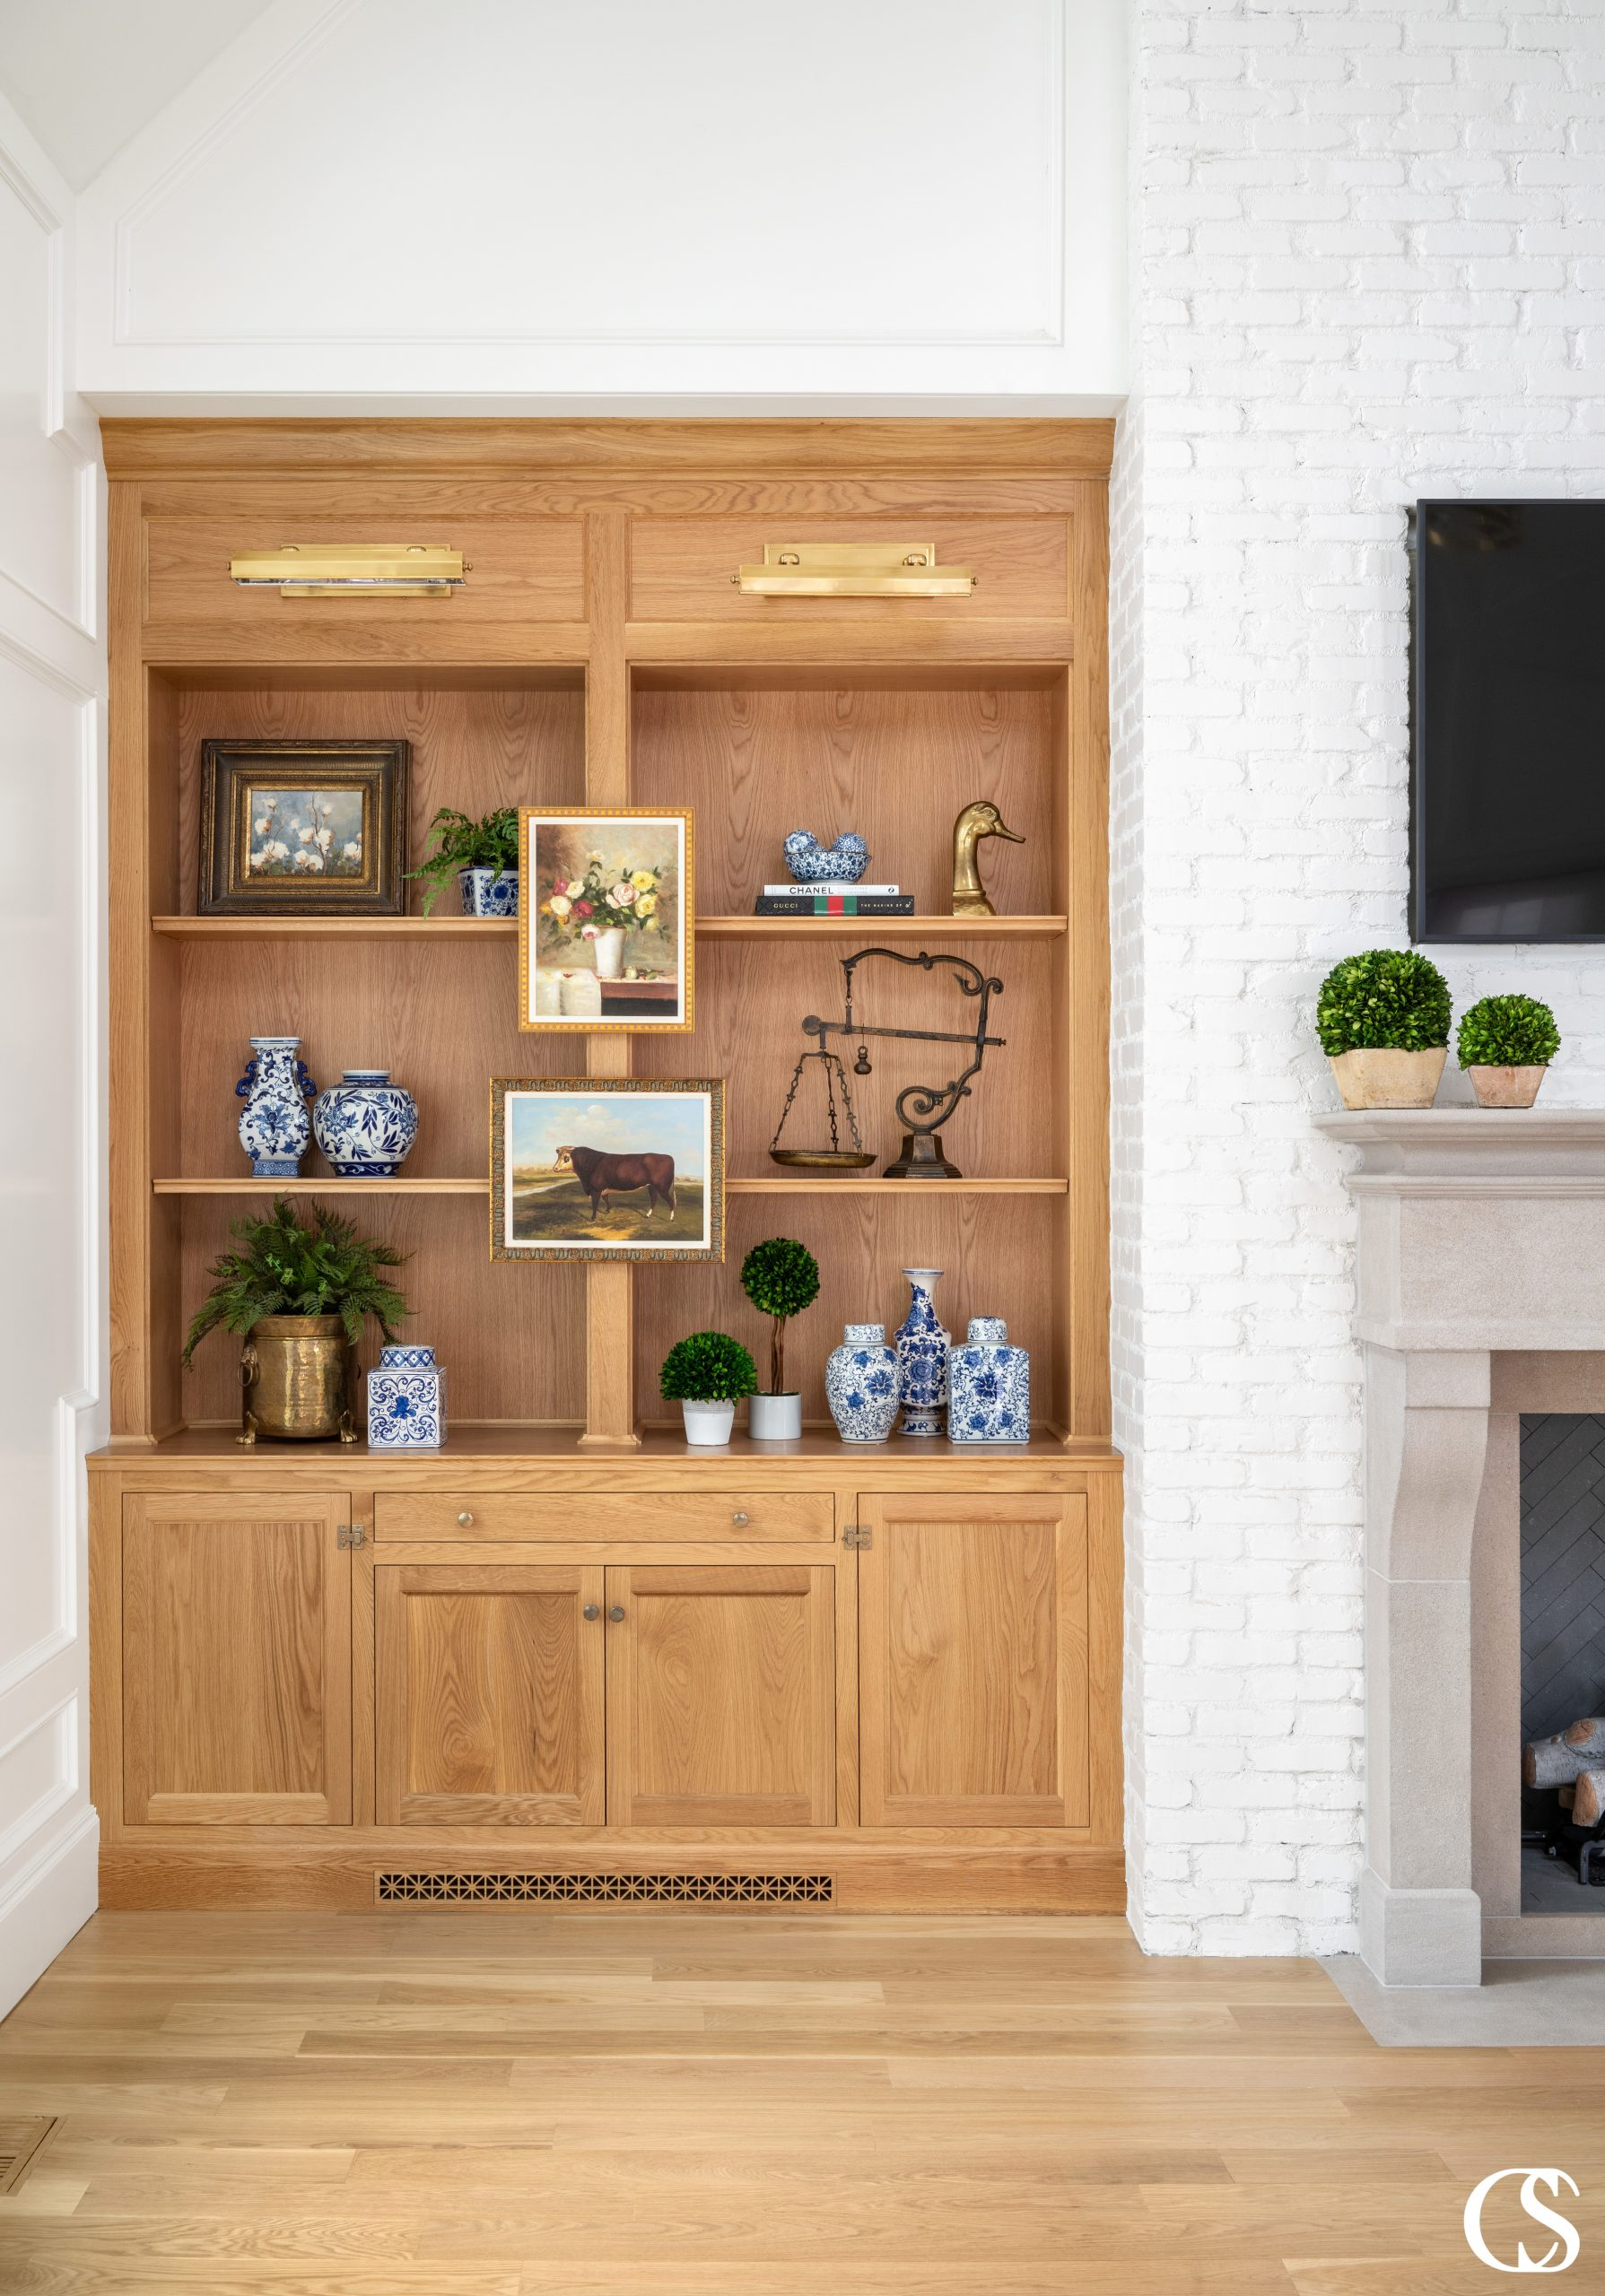 Designing custom cabinets for the home often means making them feel like they belong, like they've always been part of the house plans—even if that means using different colors and materials than what surround them.